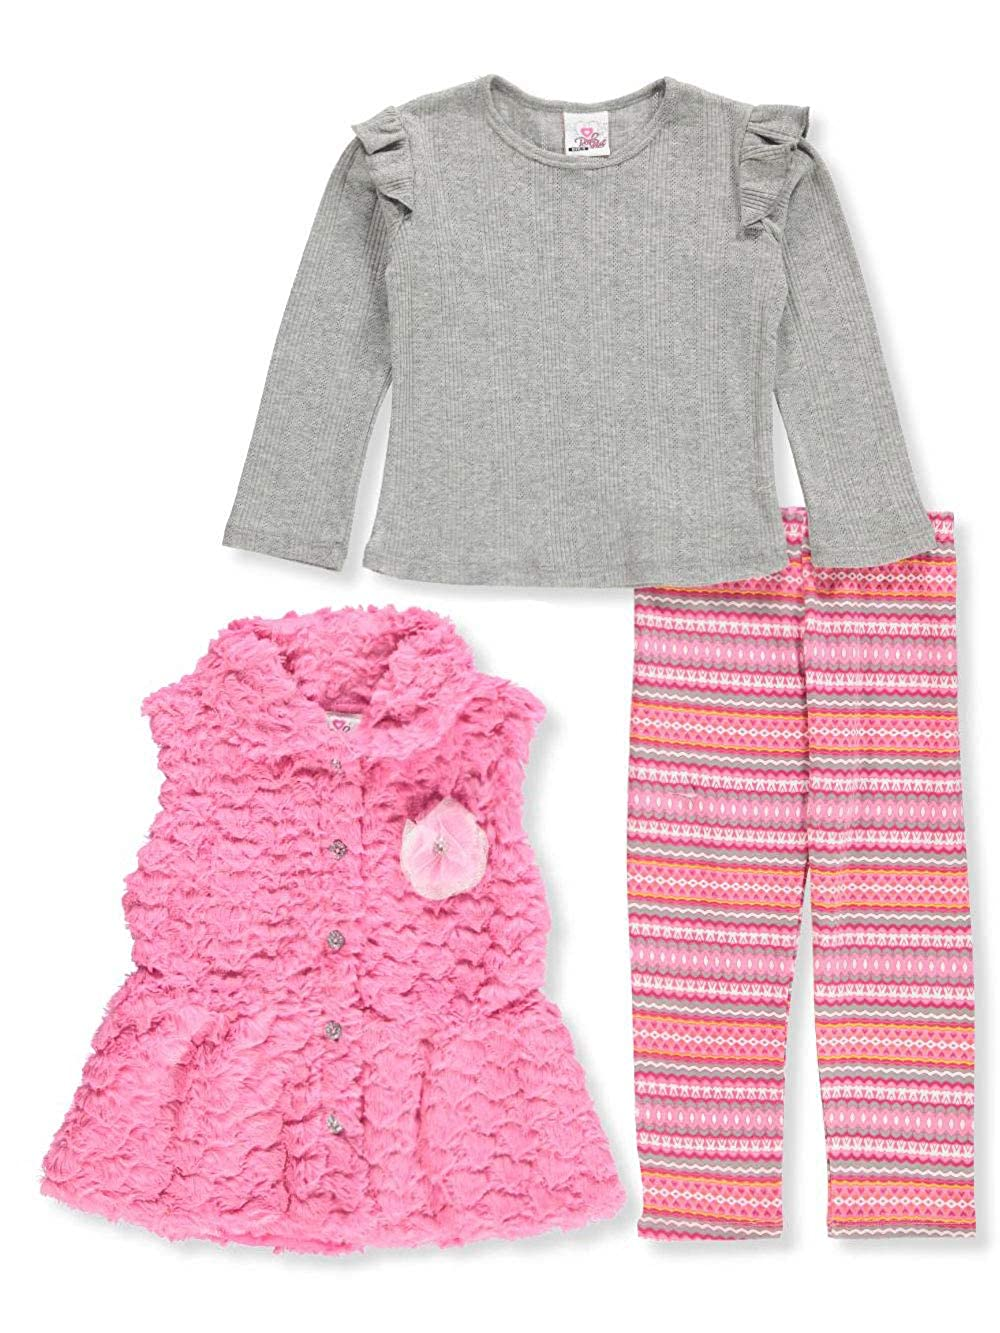 Real Love Girls' 3-Piece Leggings Set Outfit